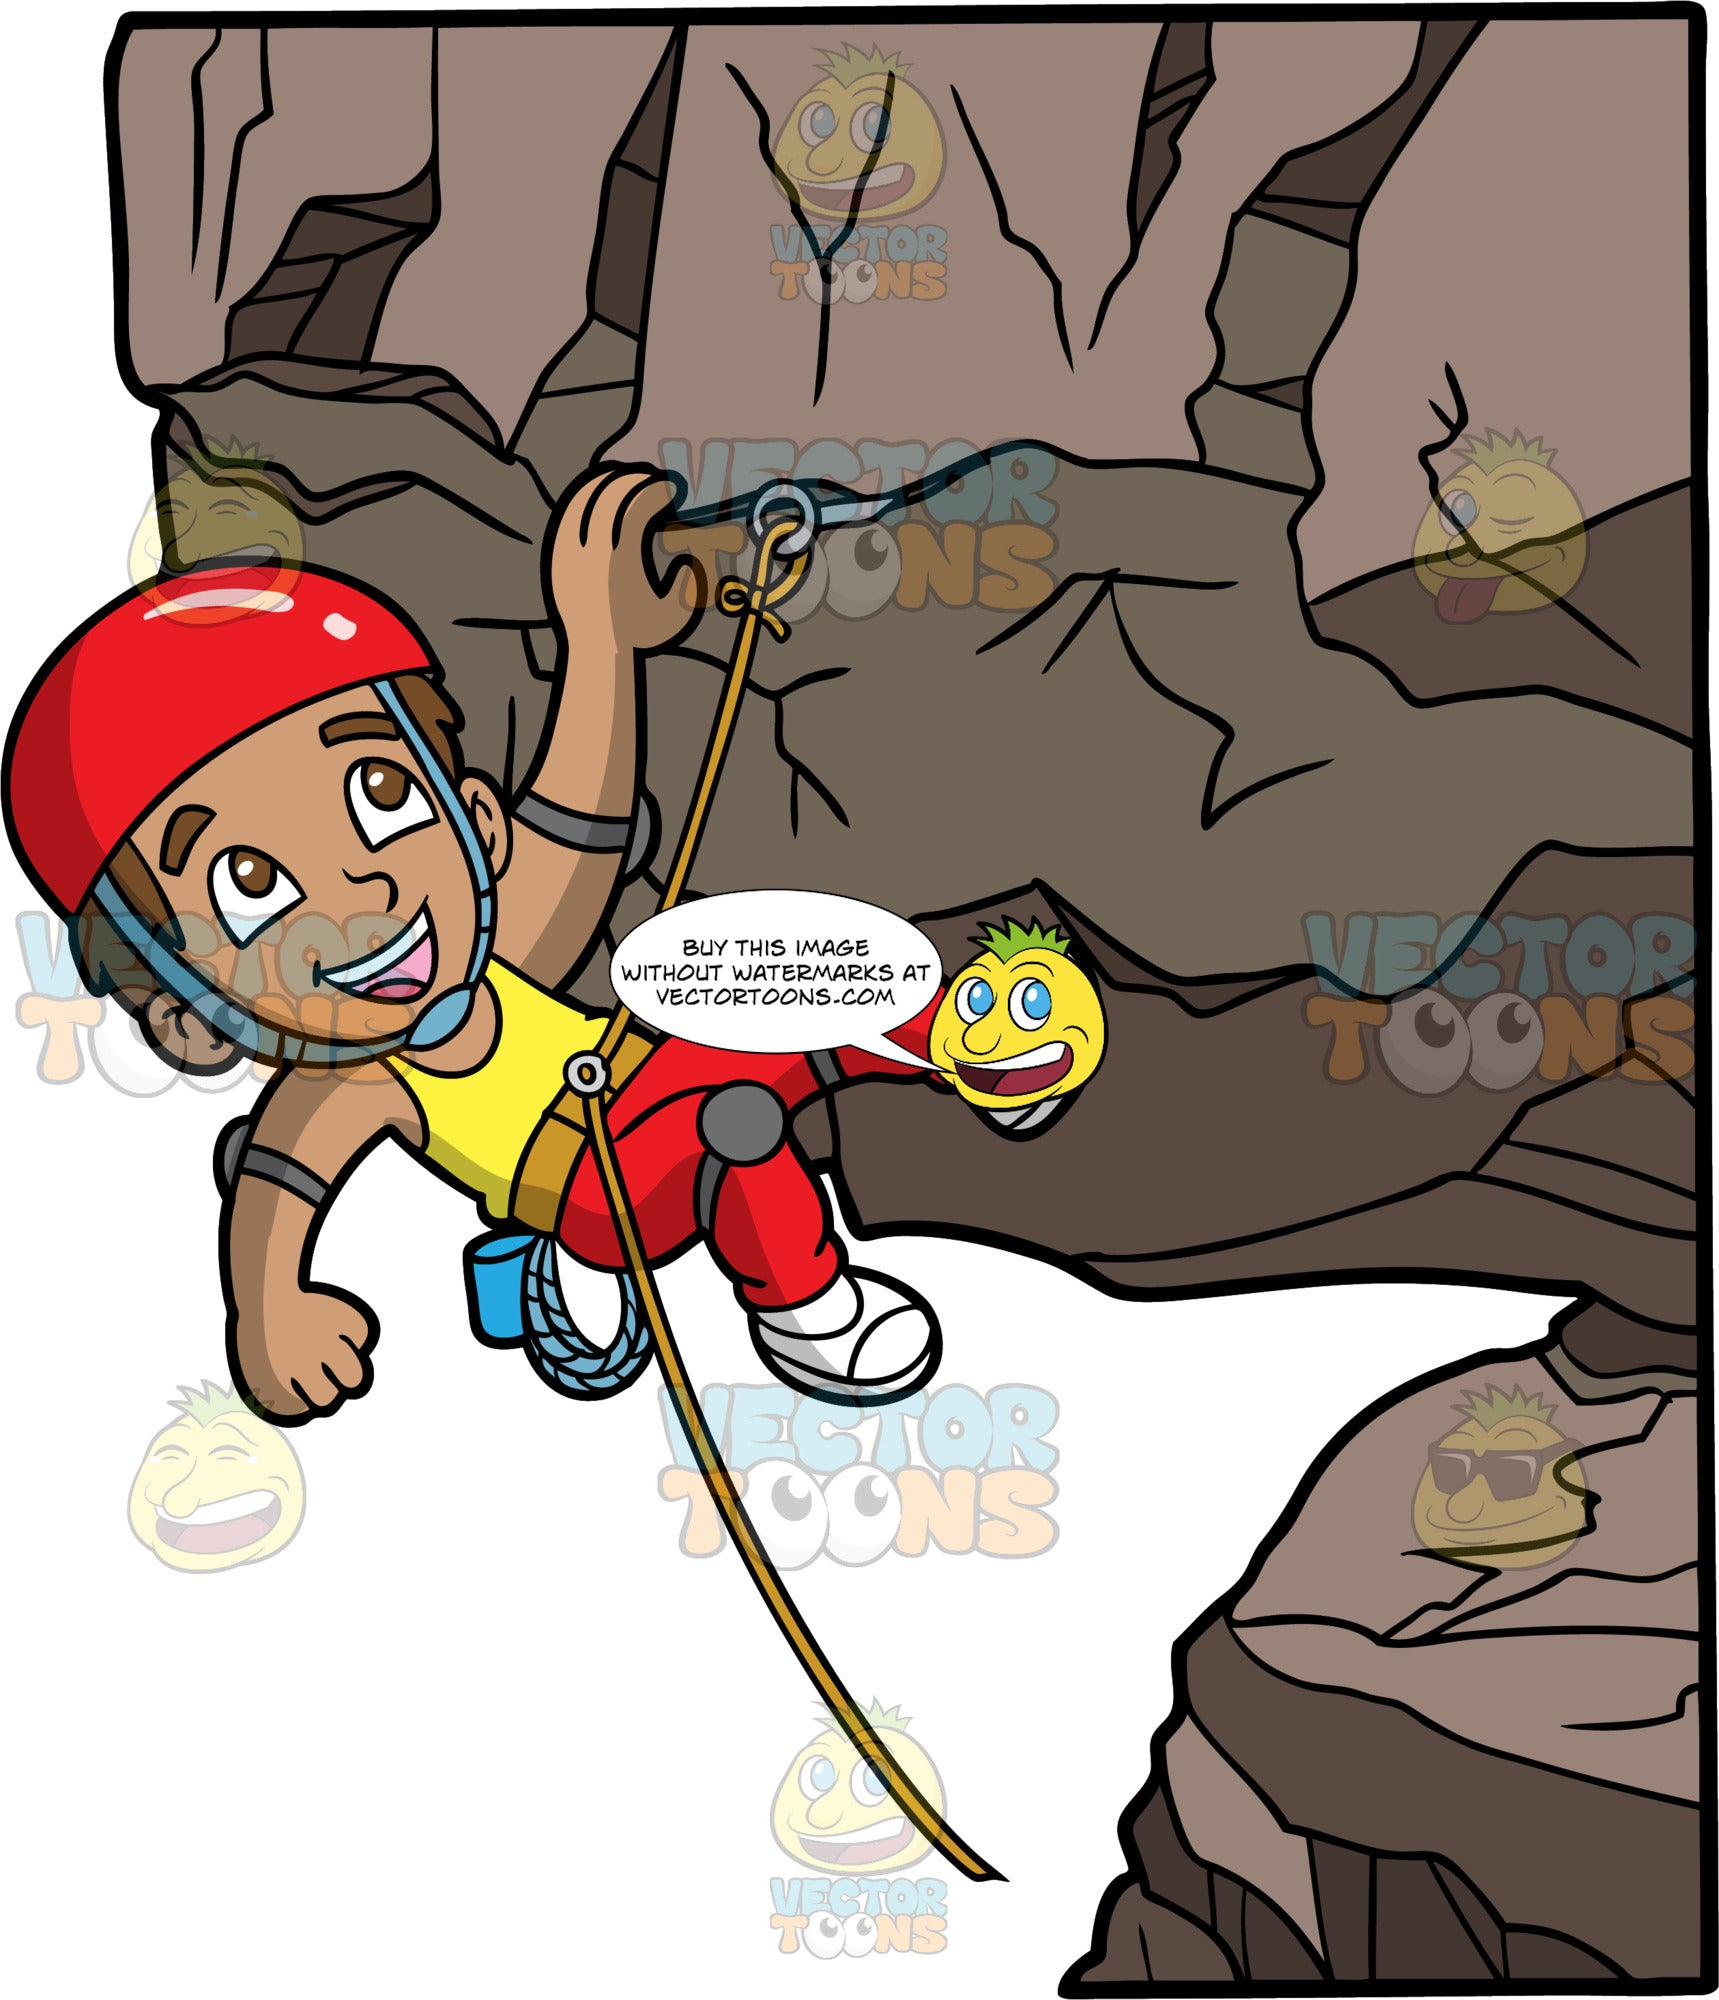 A Boy Having Fun Rock Climbing. A boy with light brown skin, brown hair, and brown eyes, wearing red pants, knee pads, white rock climbing shoes, a yellow tank top, and a red helmet, hanging onto a rock with one hand, while a rope that is attached to cliff, holds him up